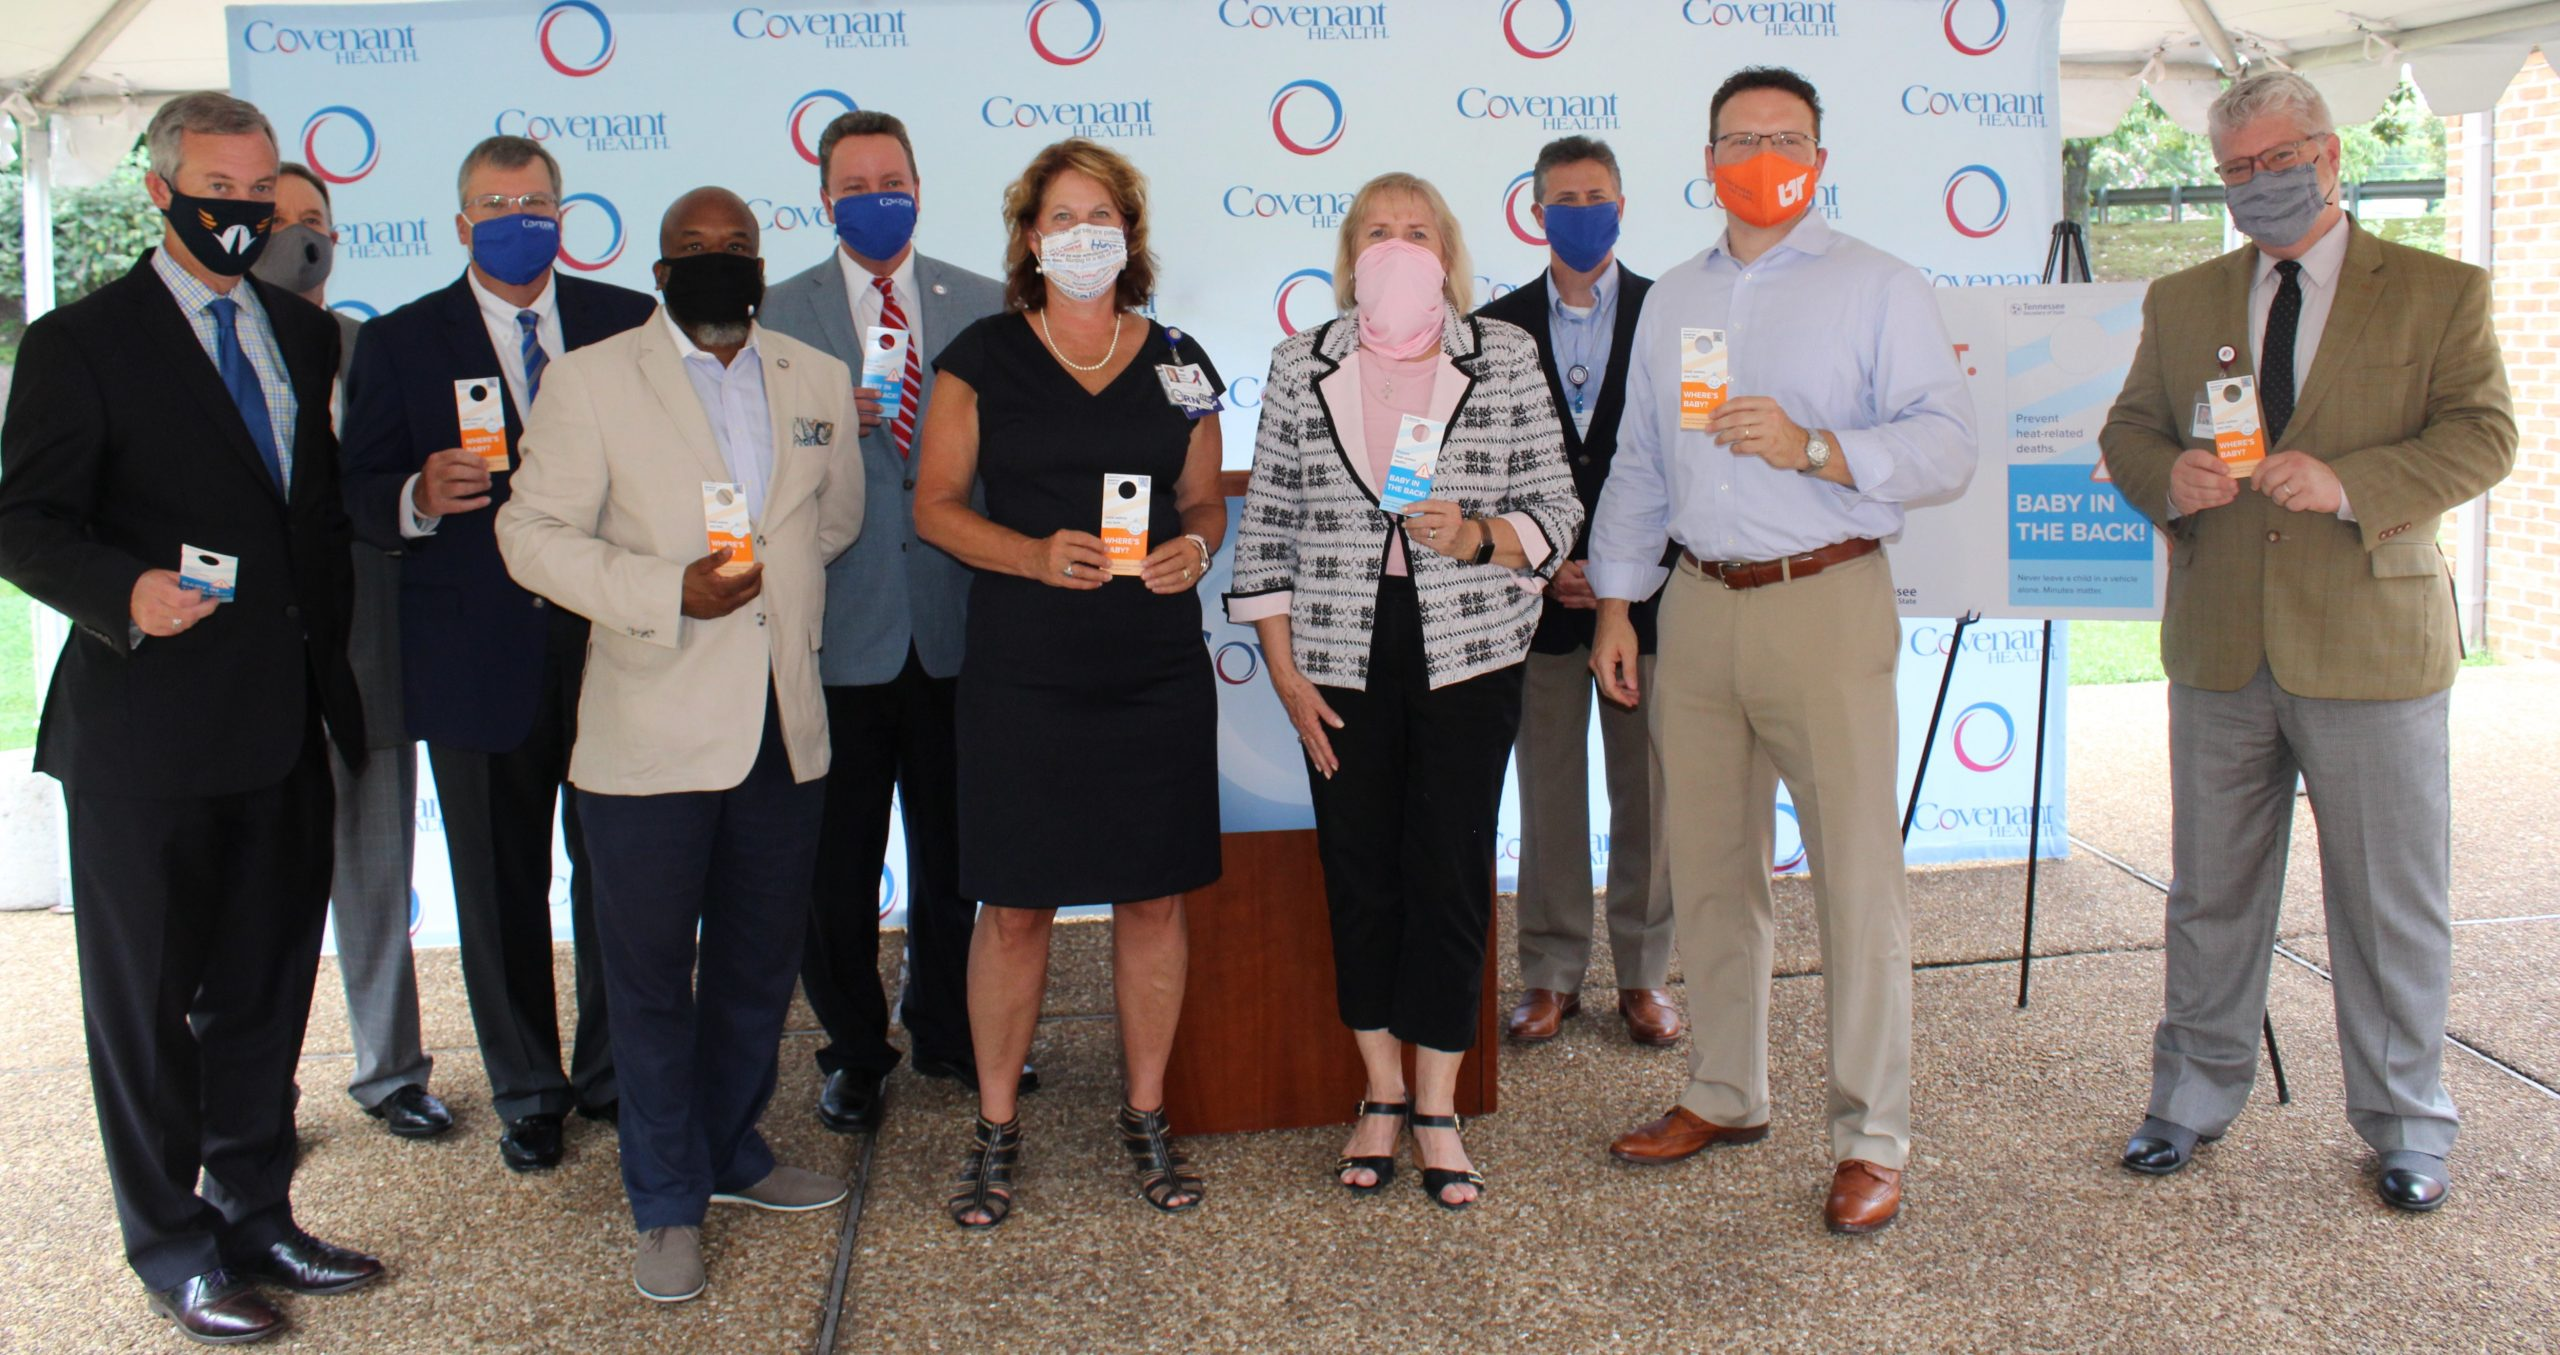 TN legislators with Covenant Health leaders announce hangtag initiative